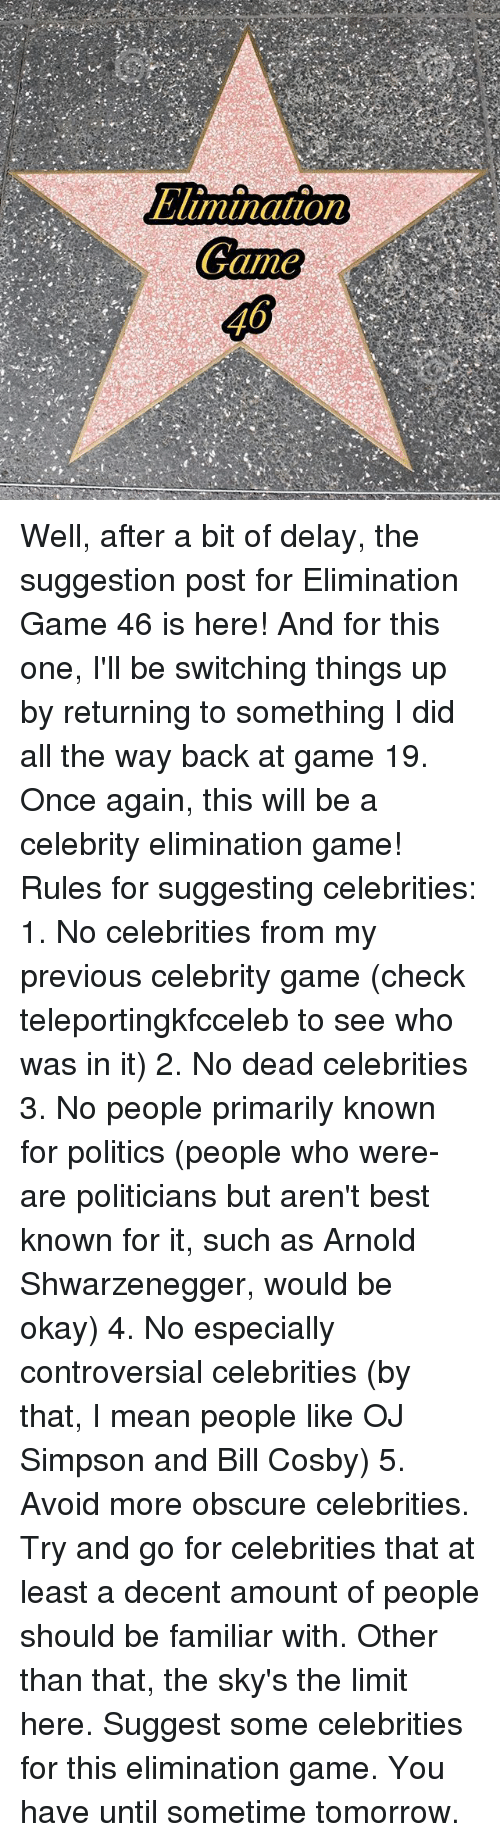 dead celebrities: Elimination  Game Well, after a bit of delay, the suggestion post for Elimination Game 46 is here! And for this one, I'll be switching things up by returning to something I did all the way back at game 19. Once again, this will be a celebrity elimination game! Rules for suggesting celebrities: 1. No celebrities from my previous celebrity game (check teleportingkfcceleb to see who was in it) 2. No dead celebrities 3. No people primarily known for politics (people who were-are politicians but aren't best known for it, such as Arnold Shwarzenegger, would be okay) 4. No especially controversial celebrities (by that, I mean people like OJ Simpson and Bill Cosby) 5. Avoid more obscure celebrities. Try and go for celebrities that at least a decent amount of people should be familiar with. Other than that, the sky's the limit here. Suggest some celebrities for this elimination game. You have until sometime tomorrow.